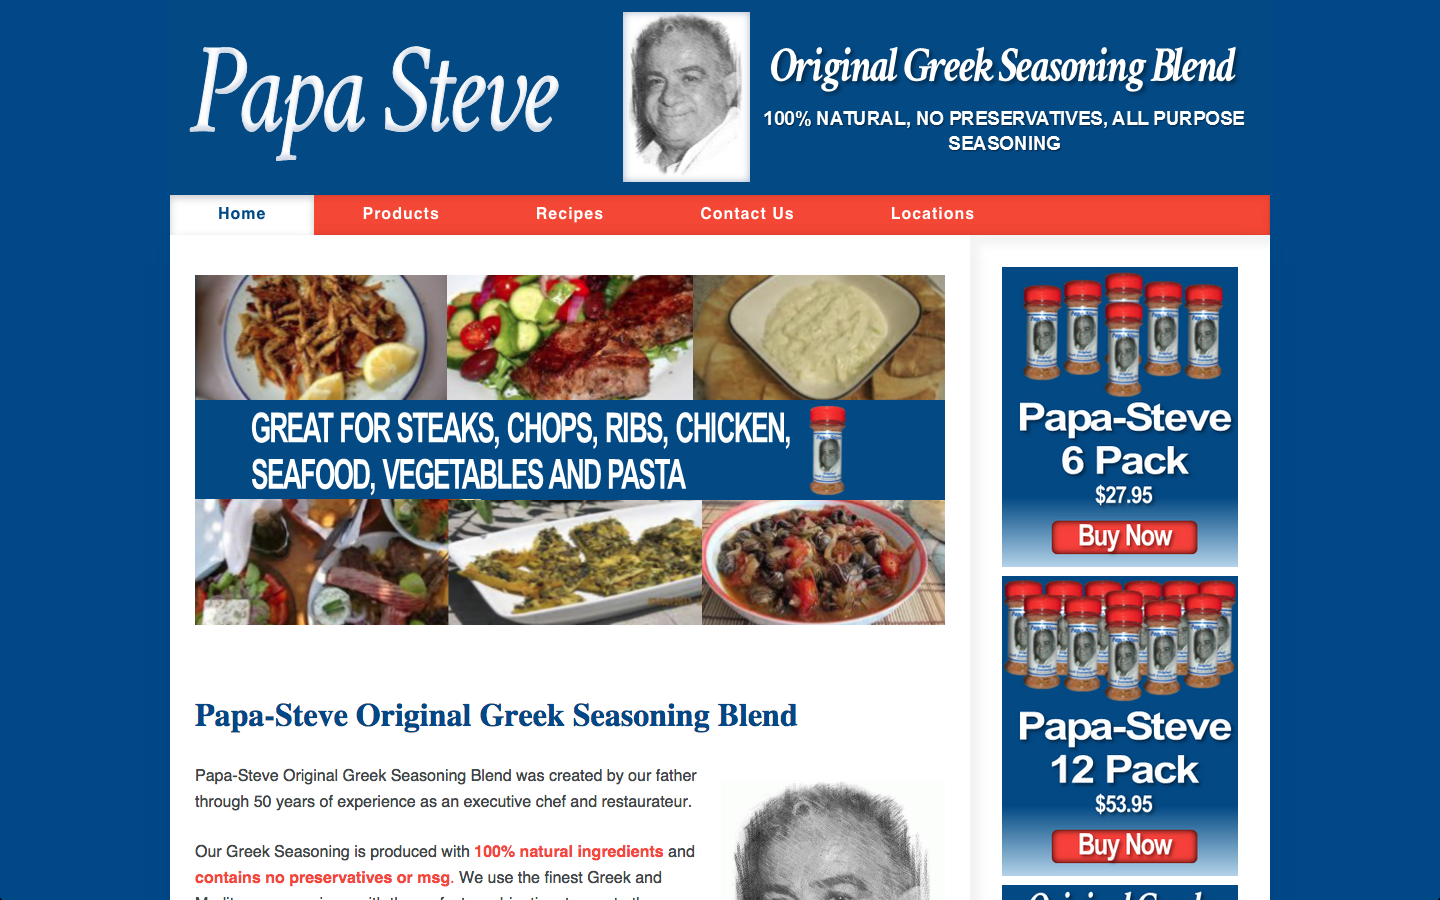 Website Redesign – Restaurant Supplies